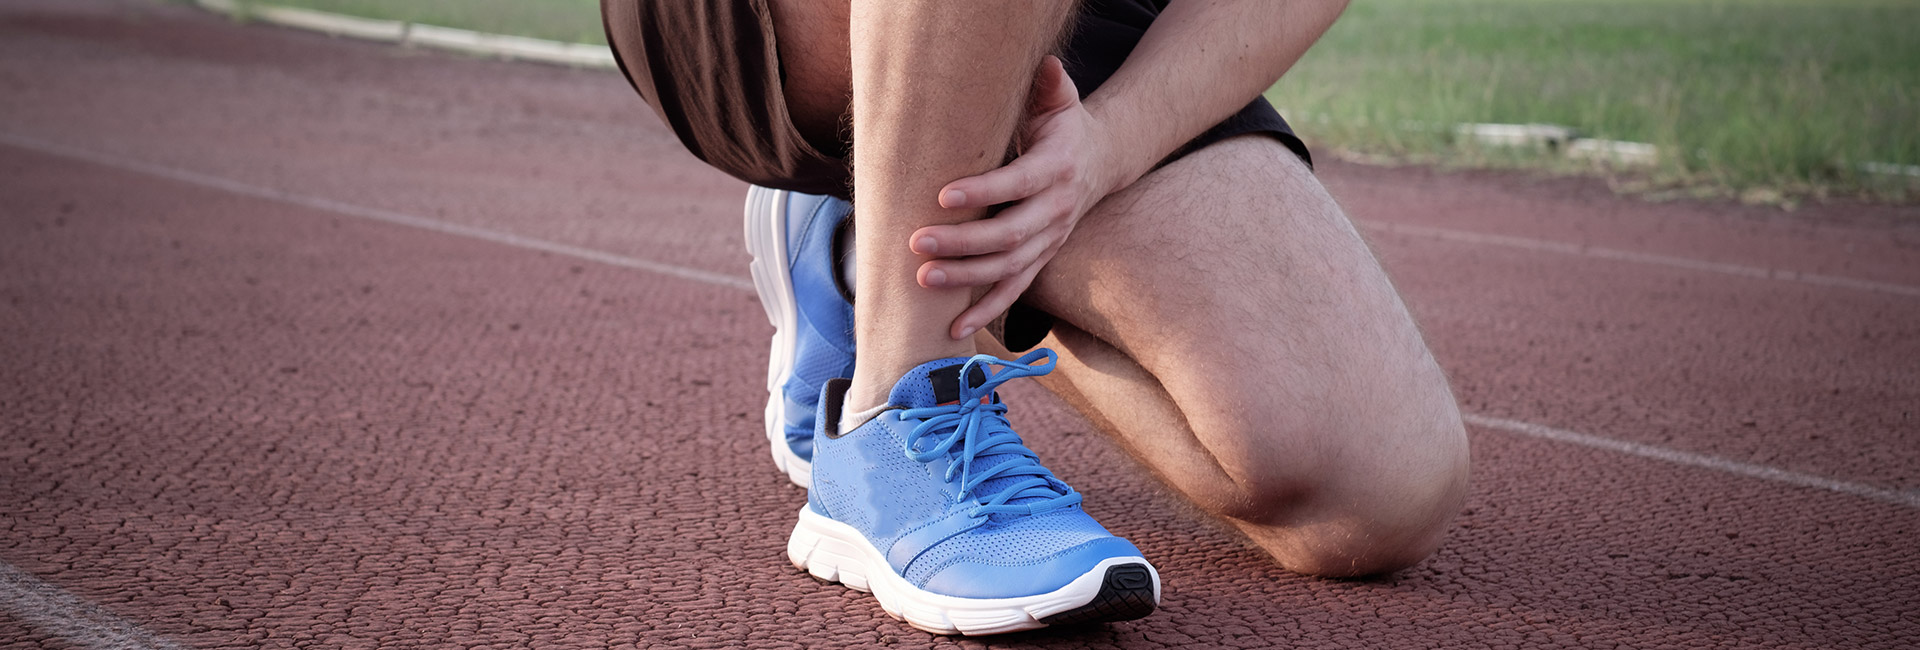 To-Ice-or-Not-to-Ice---Injury-Treatment---Therapeutic-Associates-Physical-Therapy